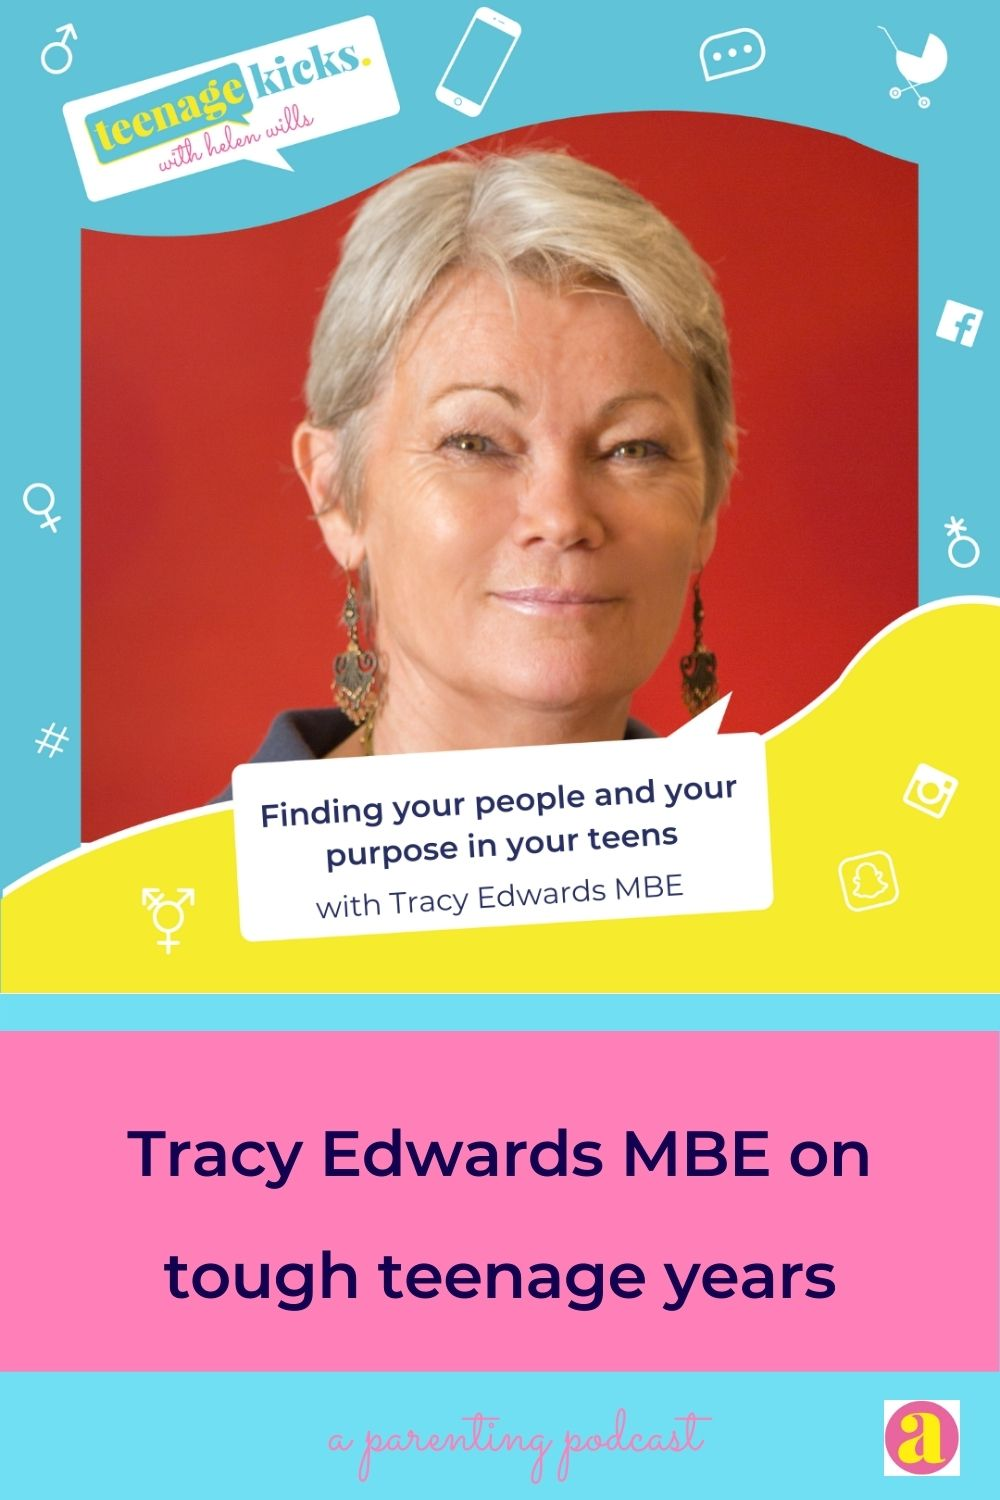 Tracy Edwards MBE was expelled from school at 15, and went on to skipper record-breaking yachts. She's now a champion for girls education